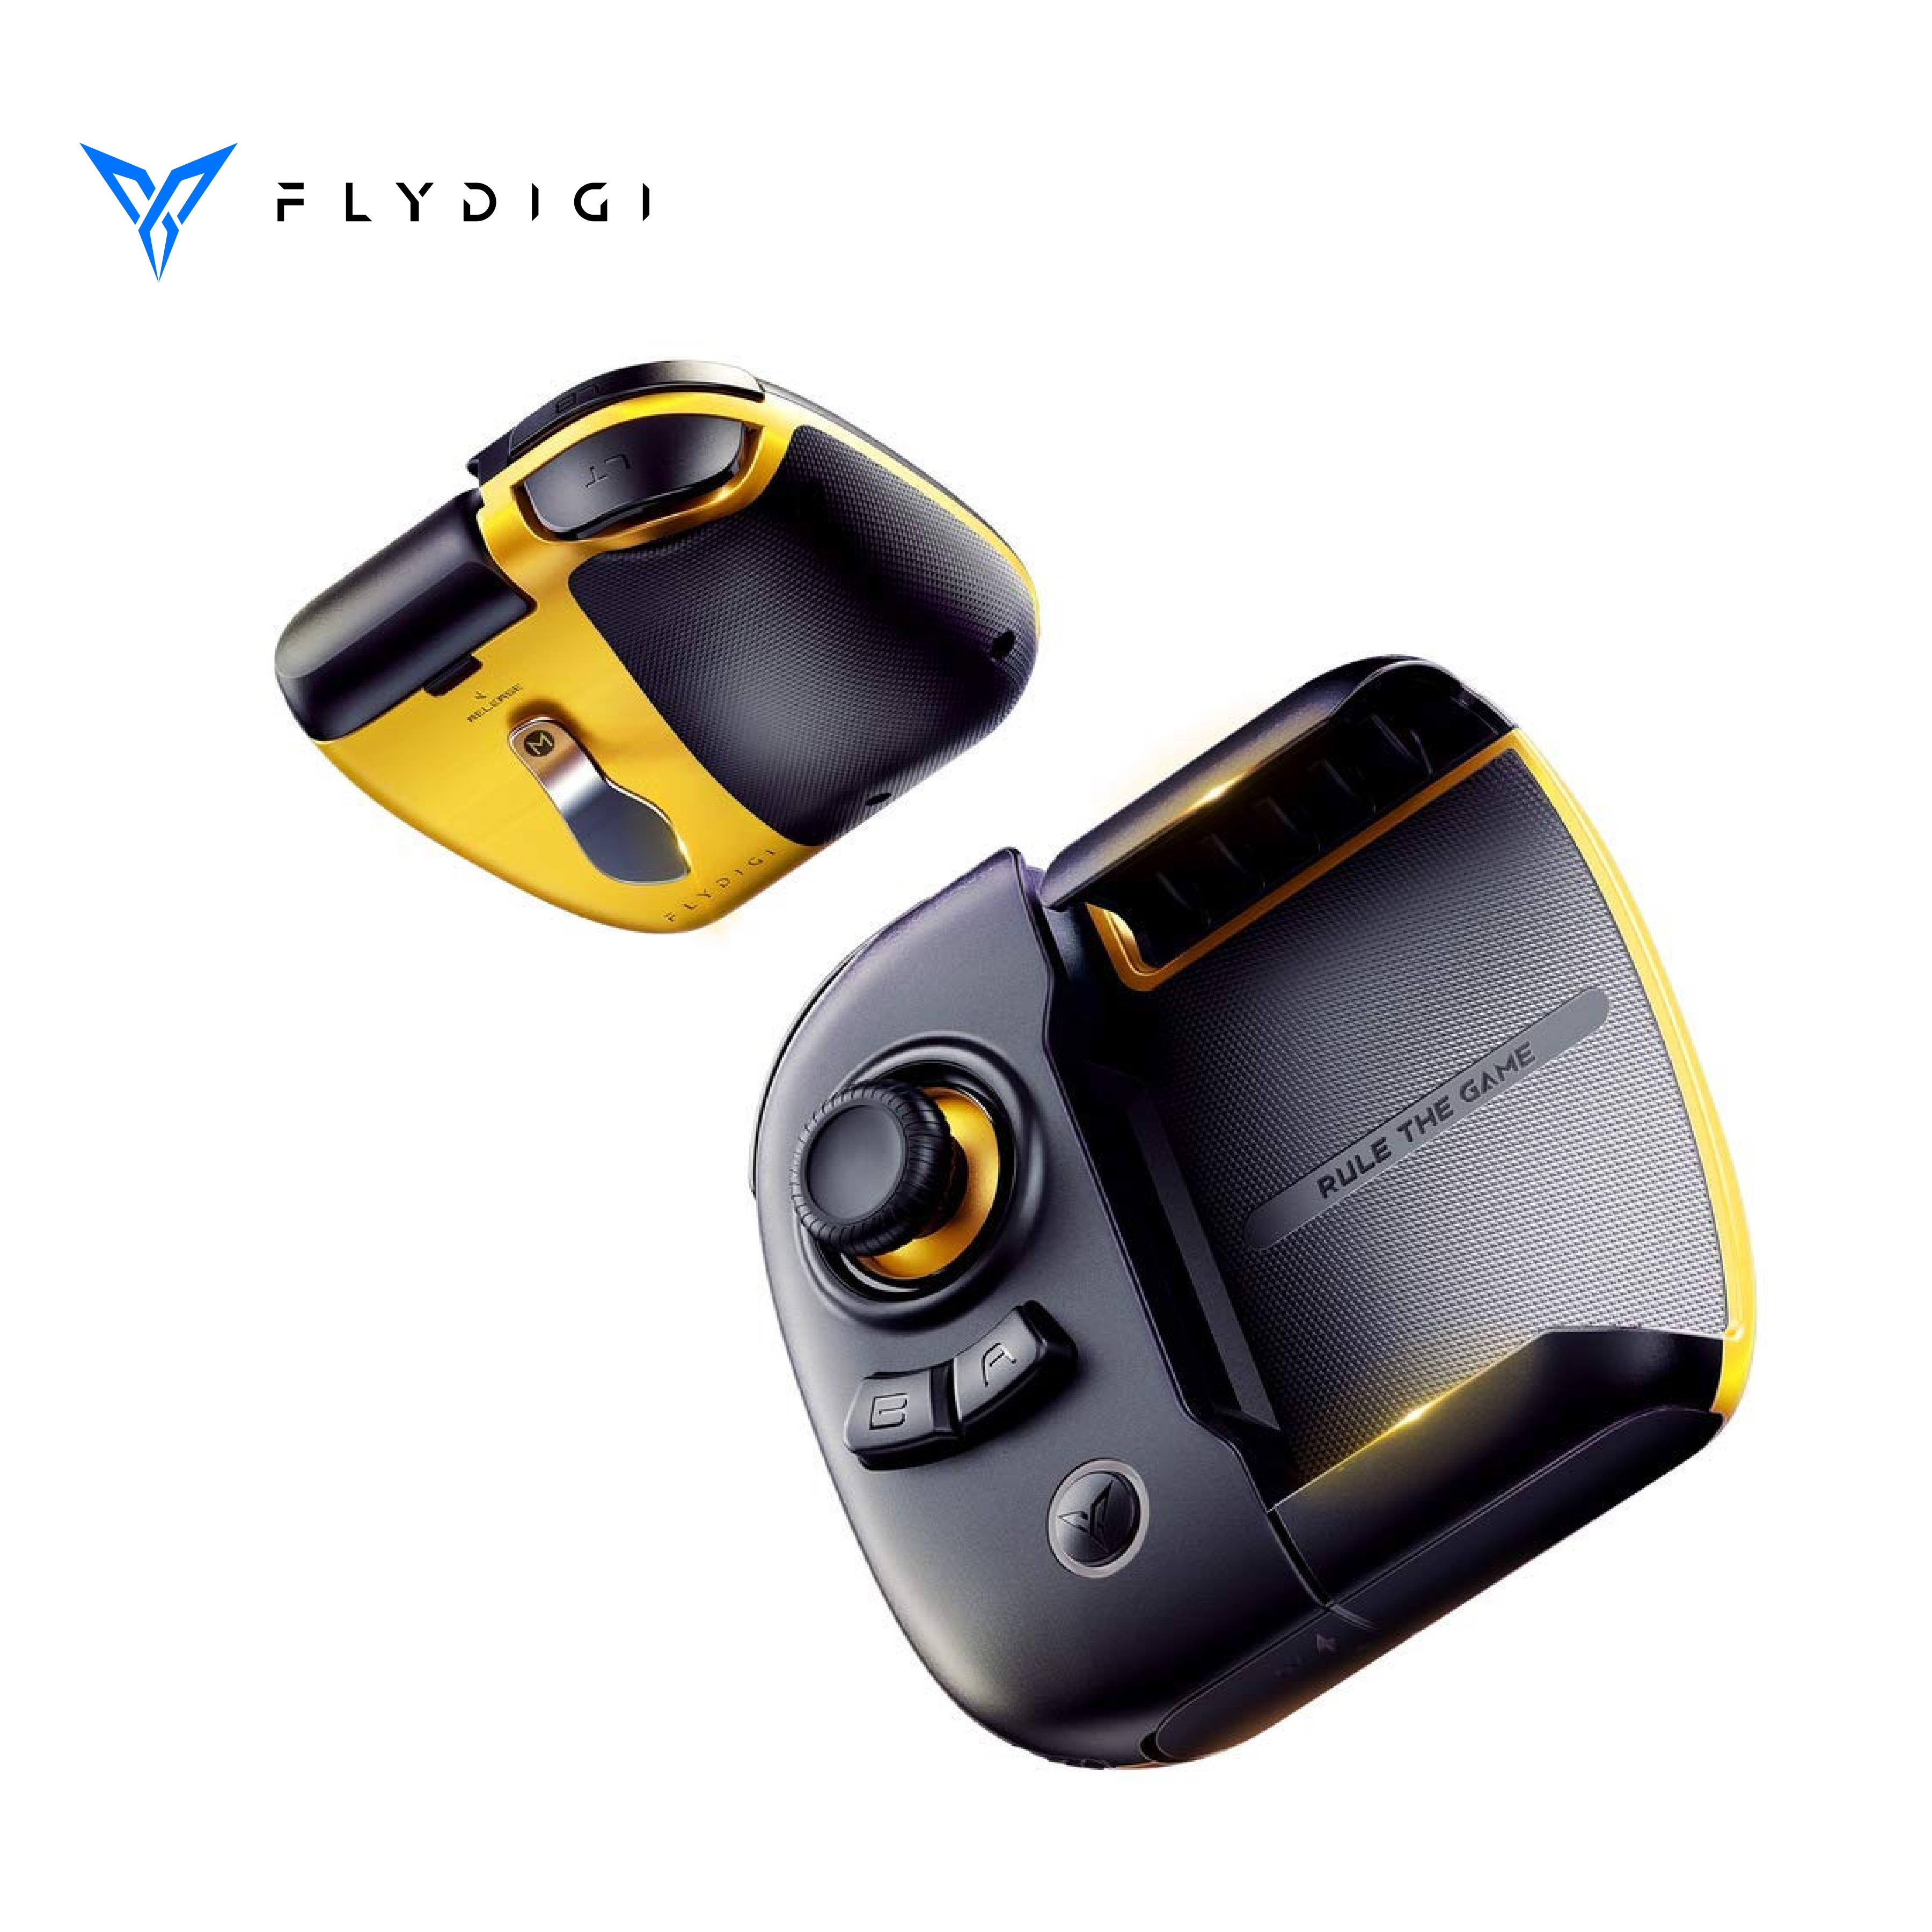 Flydigi Wasp 2 Half Handed gamepad mobile phone pad tablet controller pubg COD mobile IOS/Android Bluetooth controller геймпад(China)